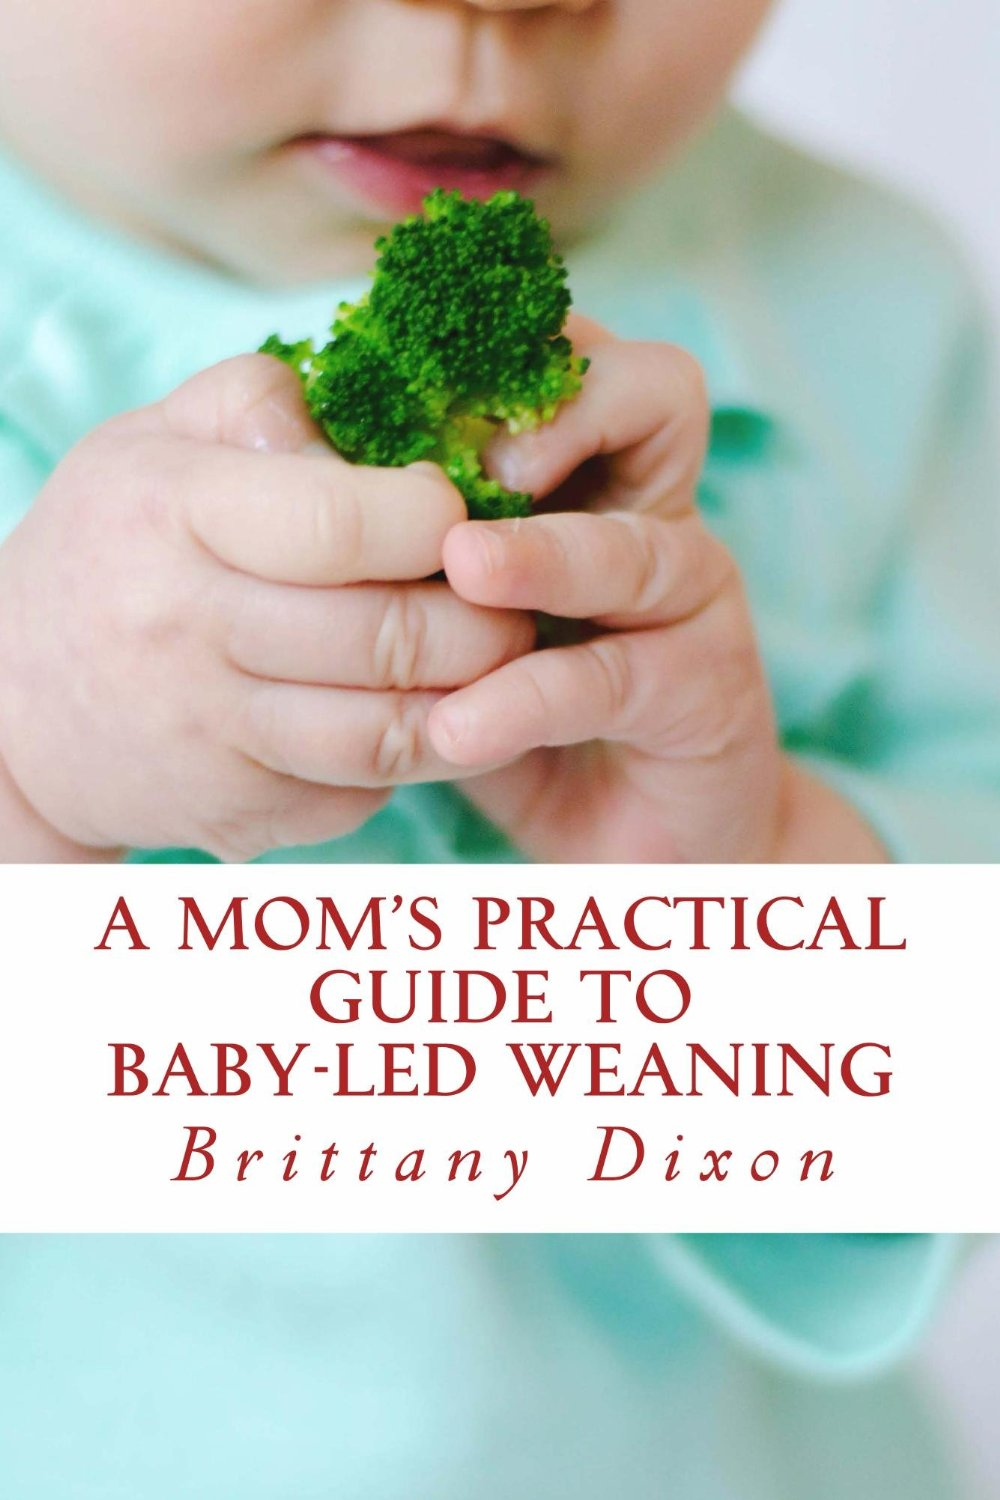 A Mom's Practical Guide to Baby-Led Weaning free download